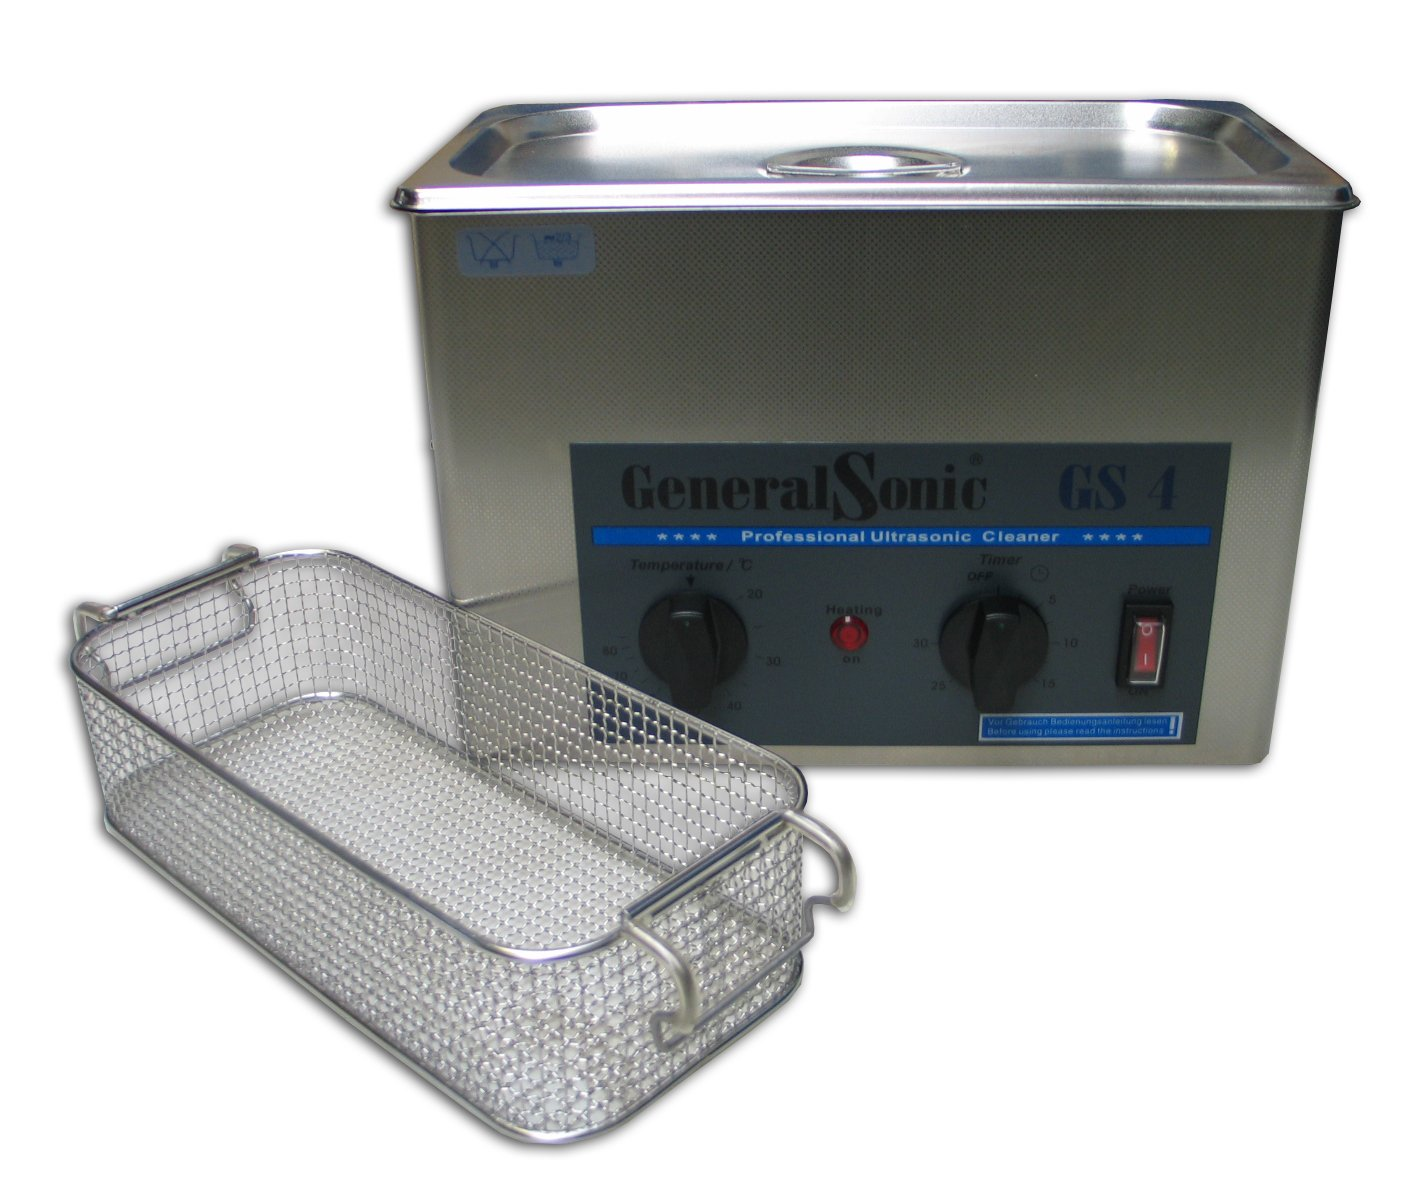 GeneralSonic GS4-4 Liter Ultrasonic Cleaner | Stainless Steel Ultrasonic bath | with Heater | frequency 35 KHz | Timer Setting: 0-30 Minutes UltrasoonShop